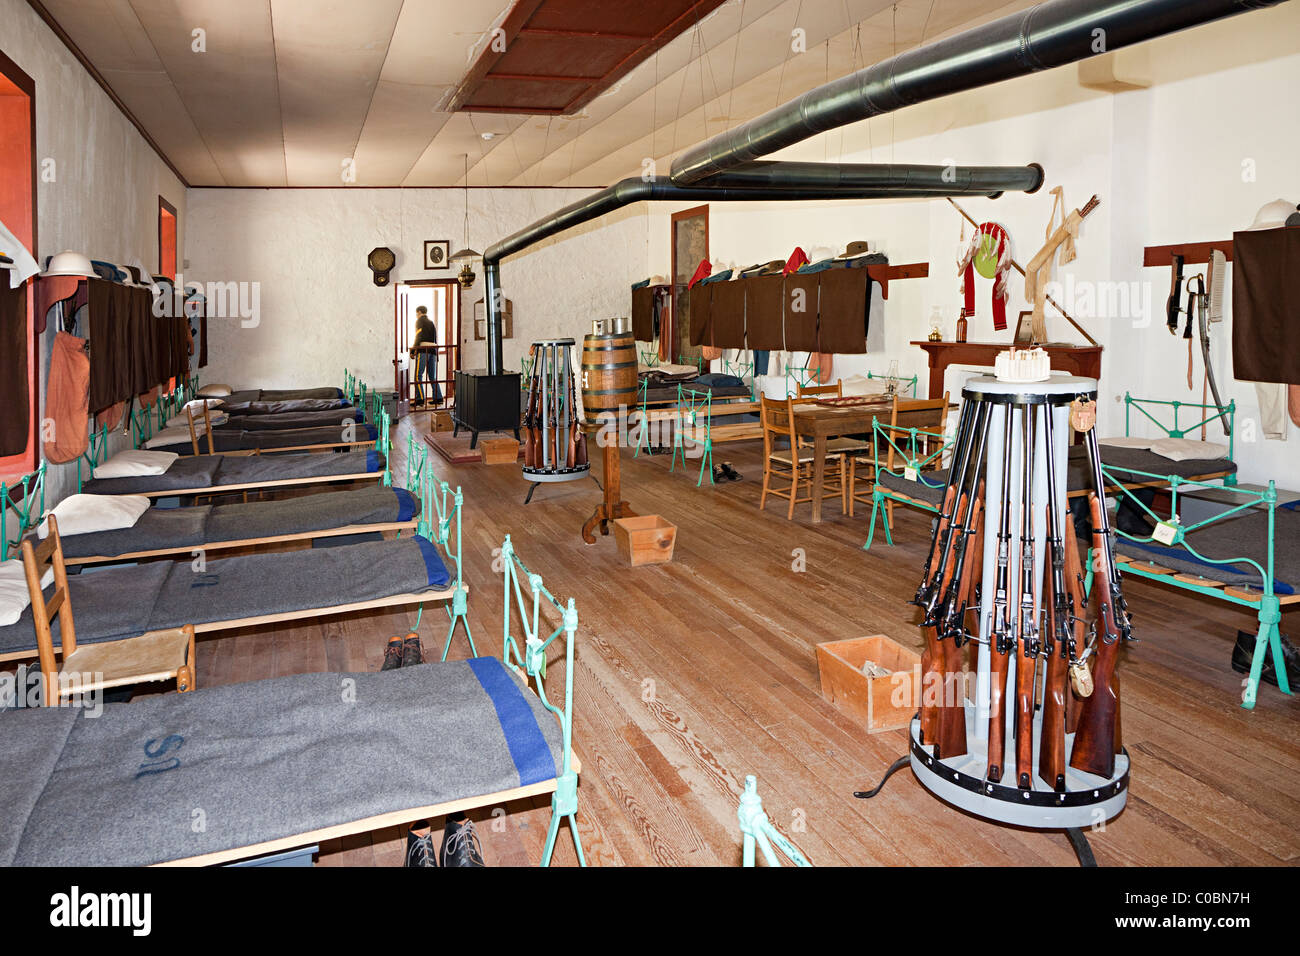 Soldiers barracks room with gun rack and beds Fort Davis National Historic Site Texas USA - Stock Image